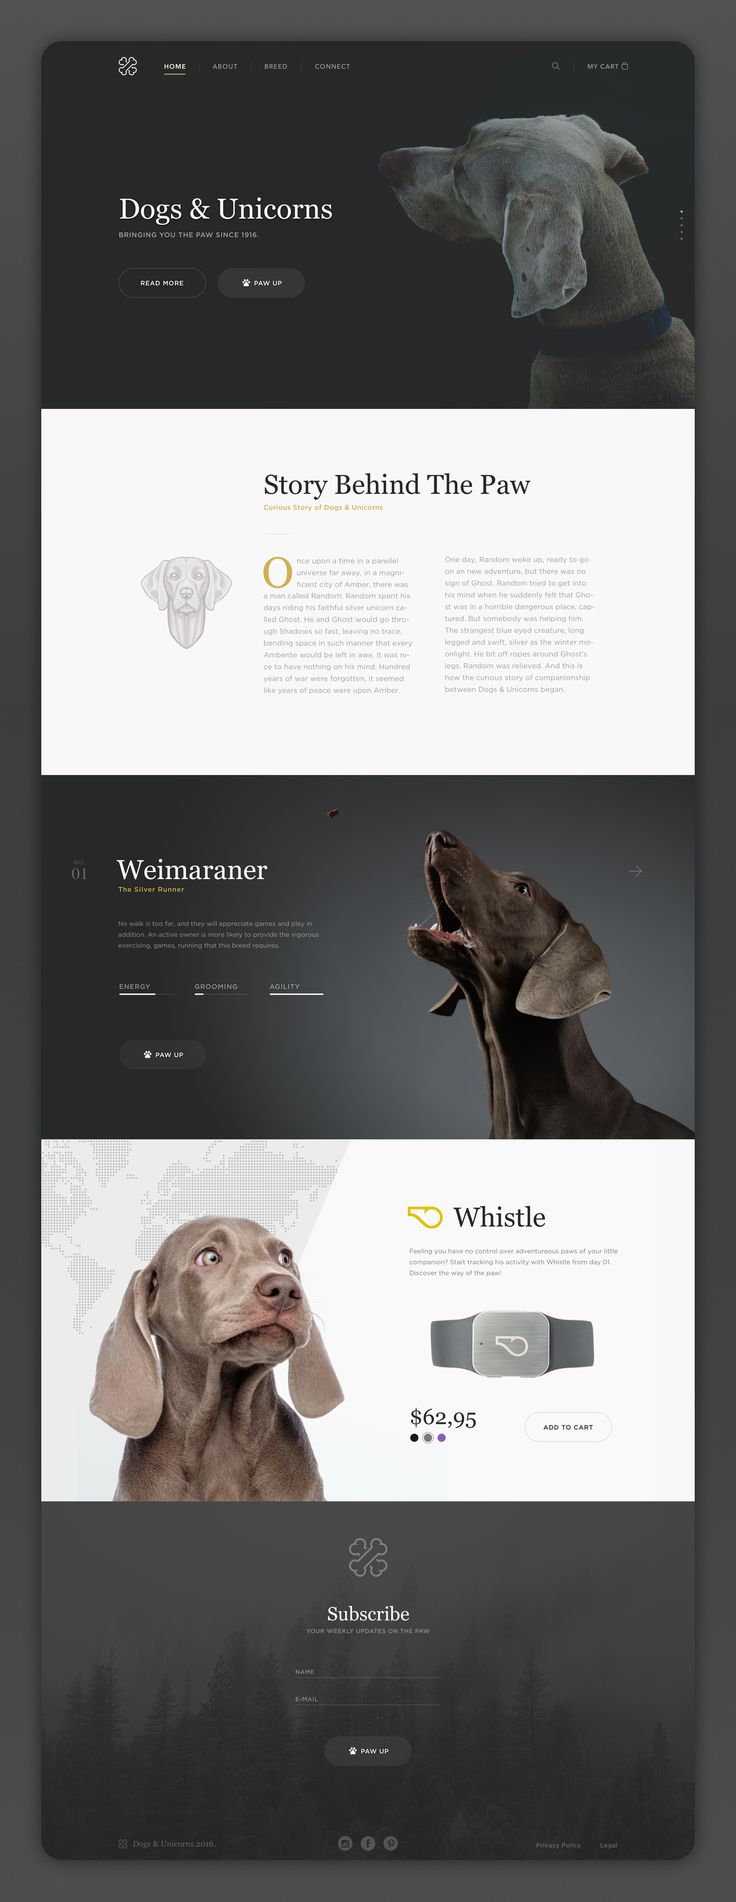 Dribbble - dogs___unicorns.png by Marina Matijaca